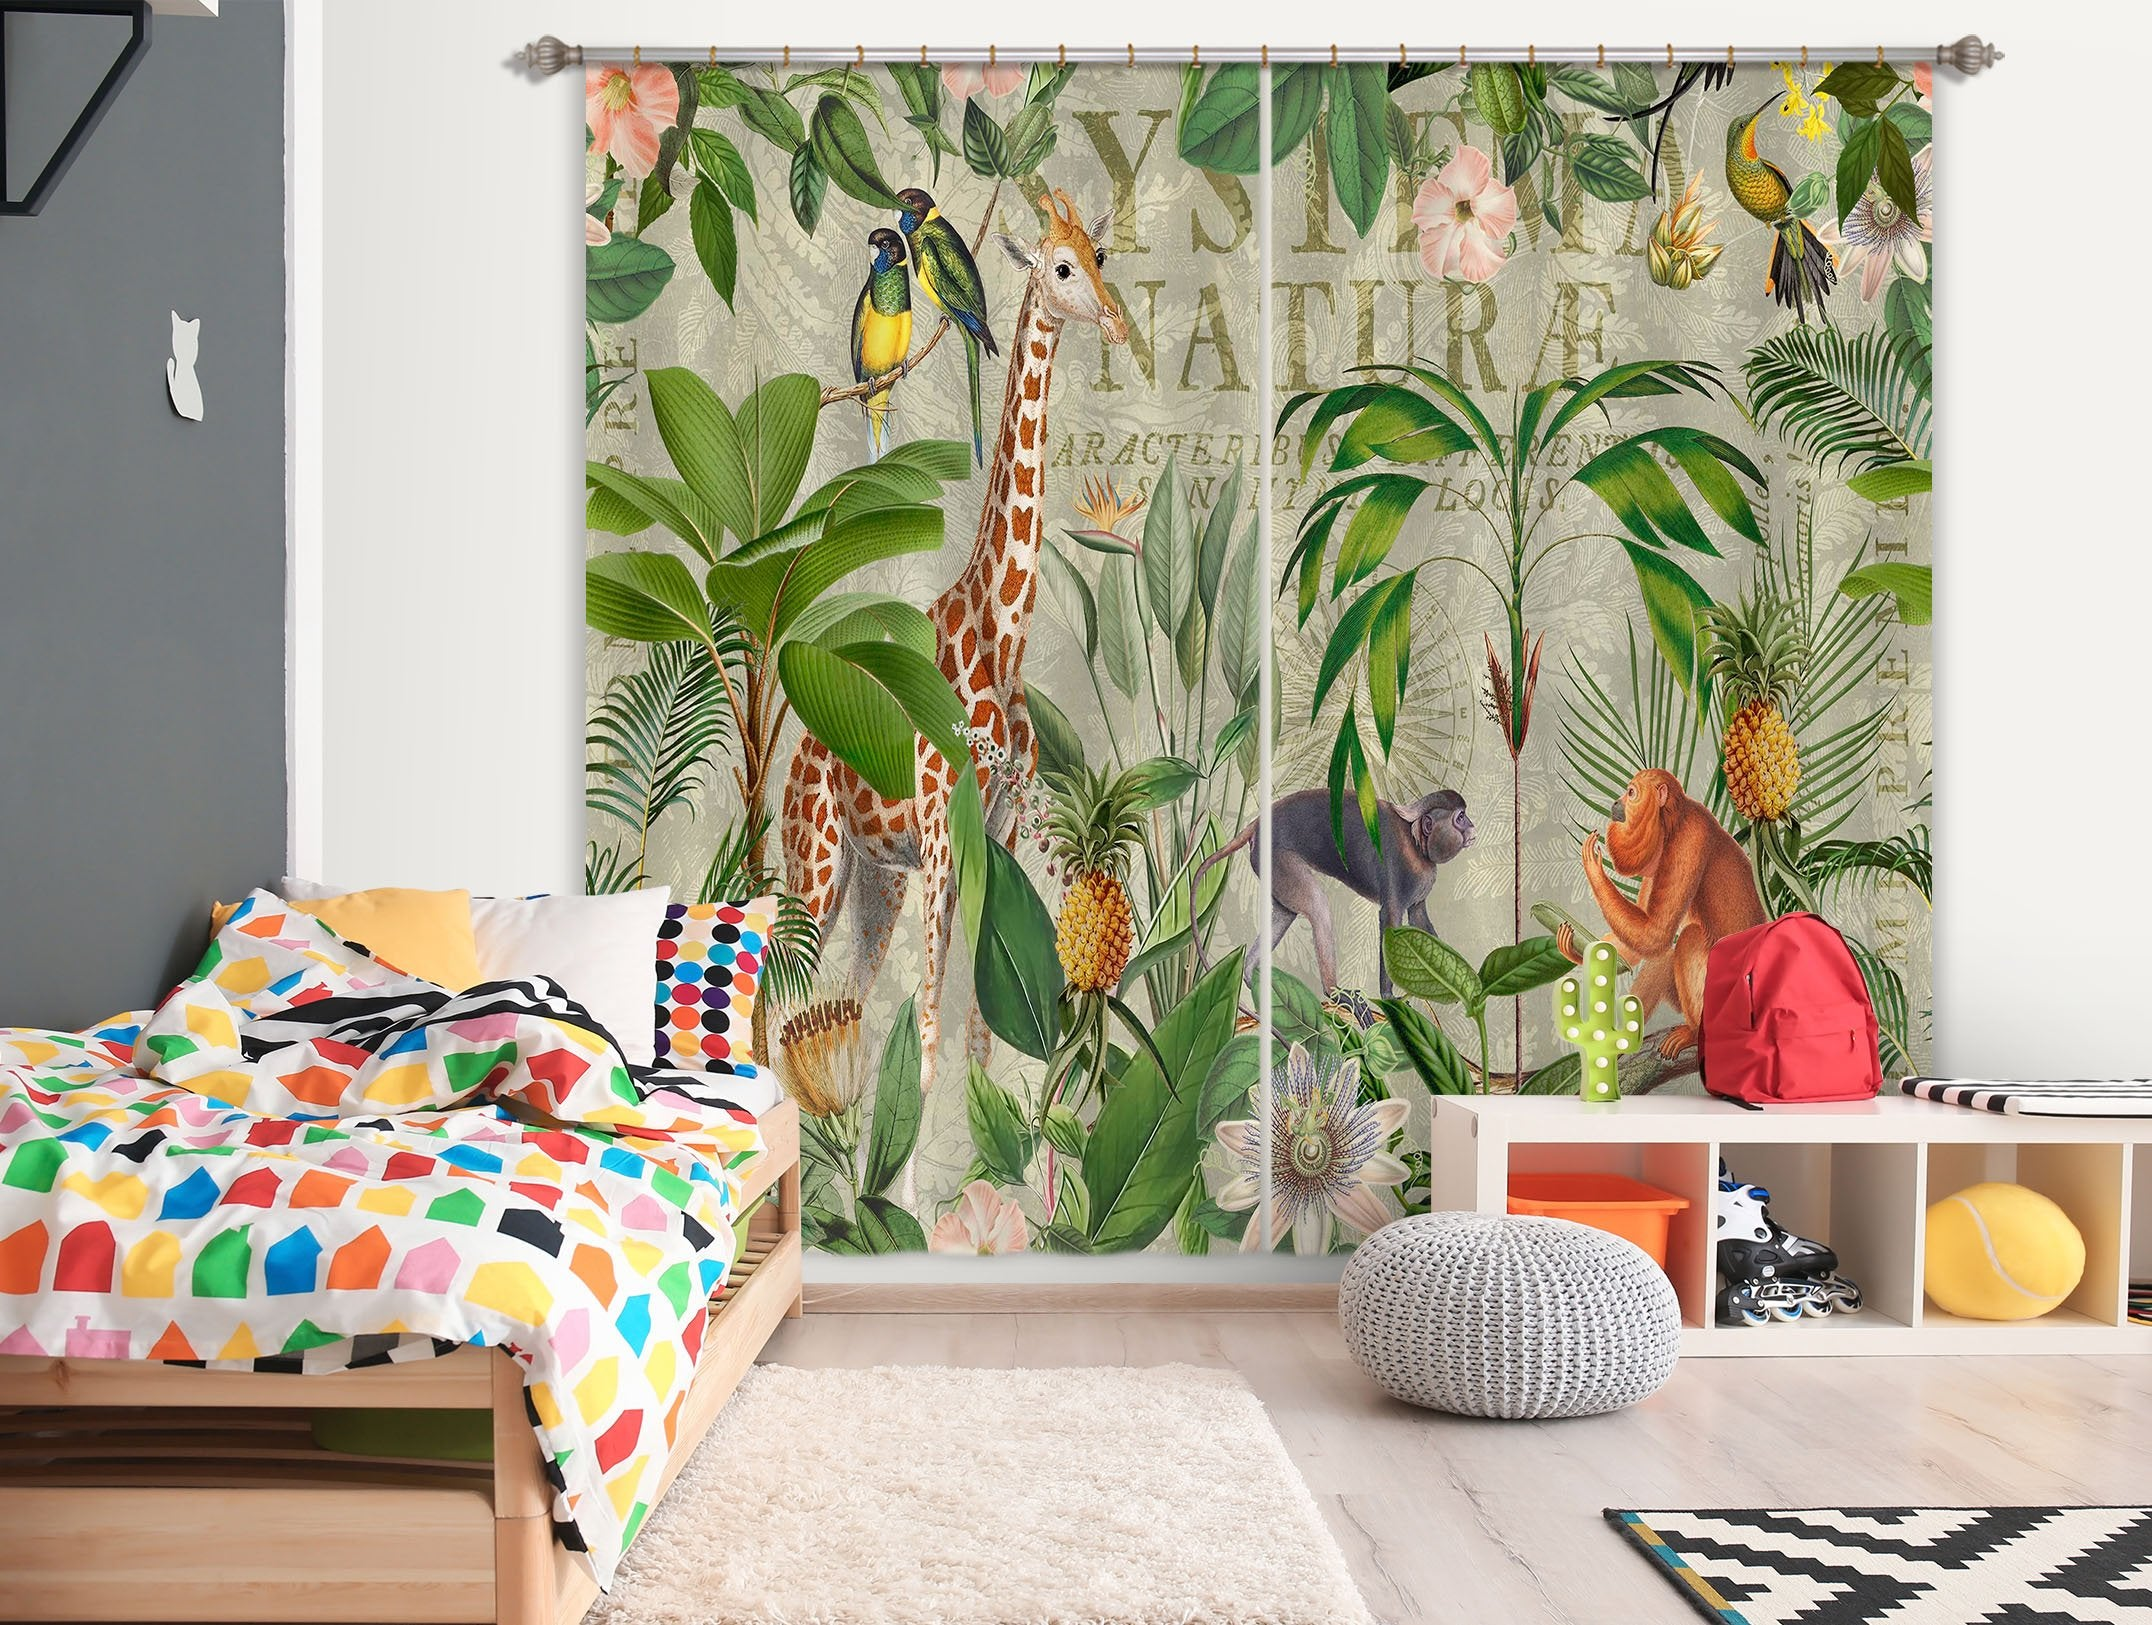 3D Animal Home 080 Andrea haase Curtain Curtains Drapes Wallpaper AJ Wallpaper